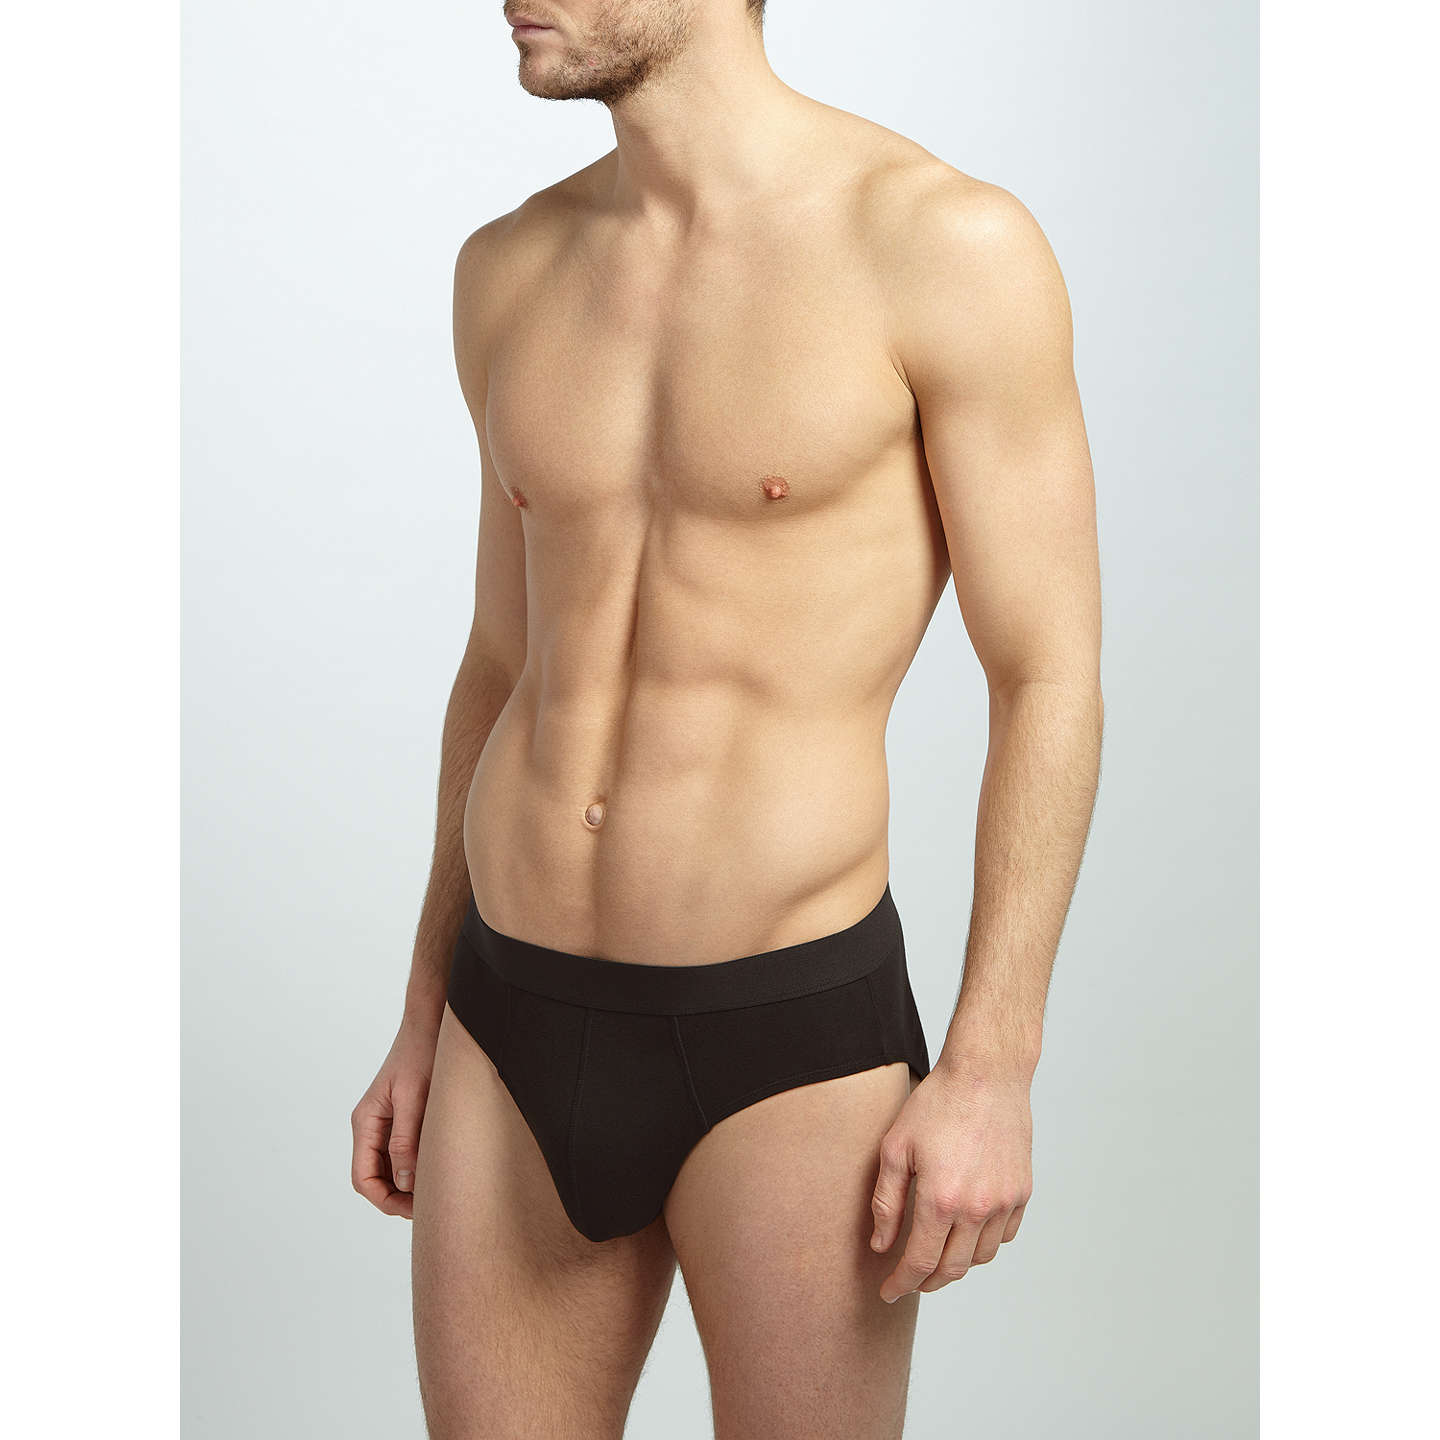 BuyJohn Lewis Organic Cotton Briefs, Pack of 4, Black, S Online at johnlewis.com